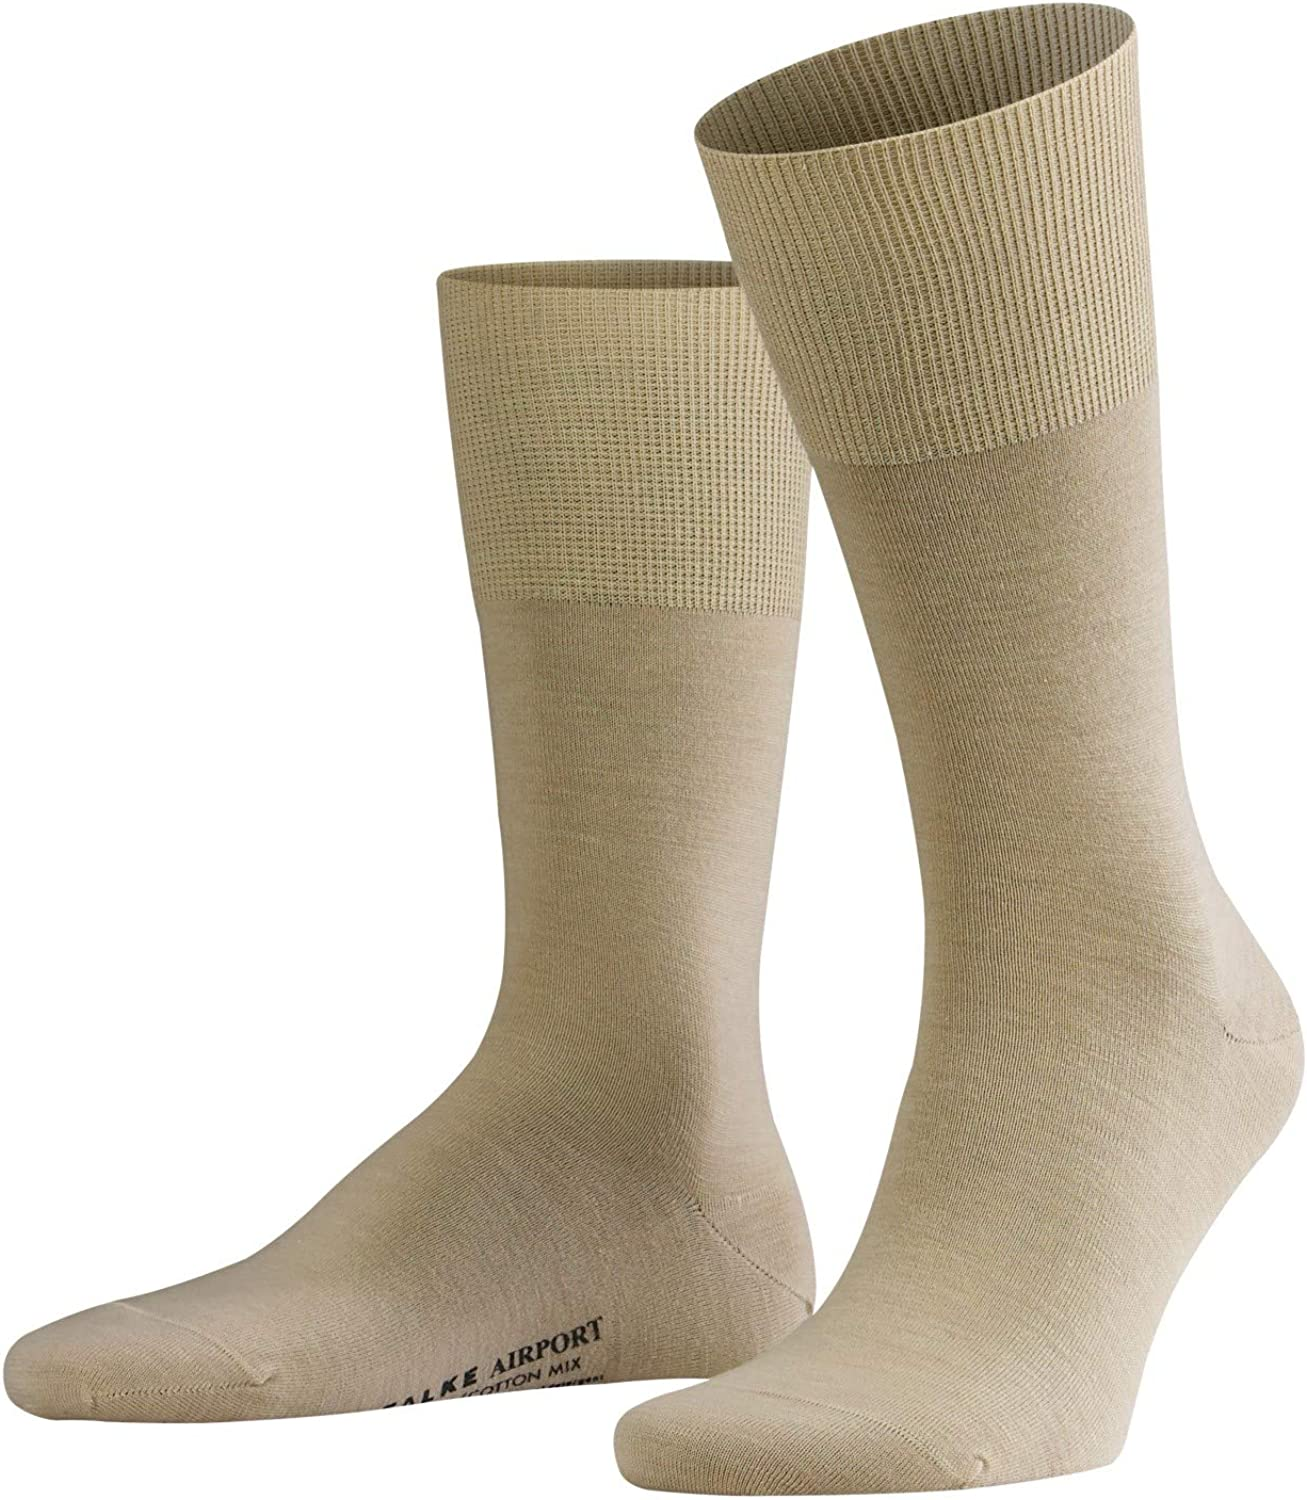 FALKE Mens Airport Dress Sock - Merino Wool/Cotton Blend, Multiple Colors, US sizes 6.5 to 15, 1 Pair